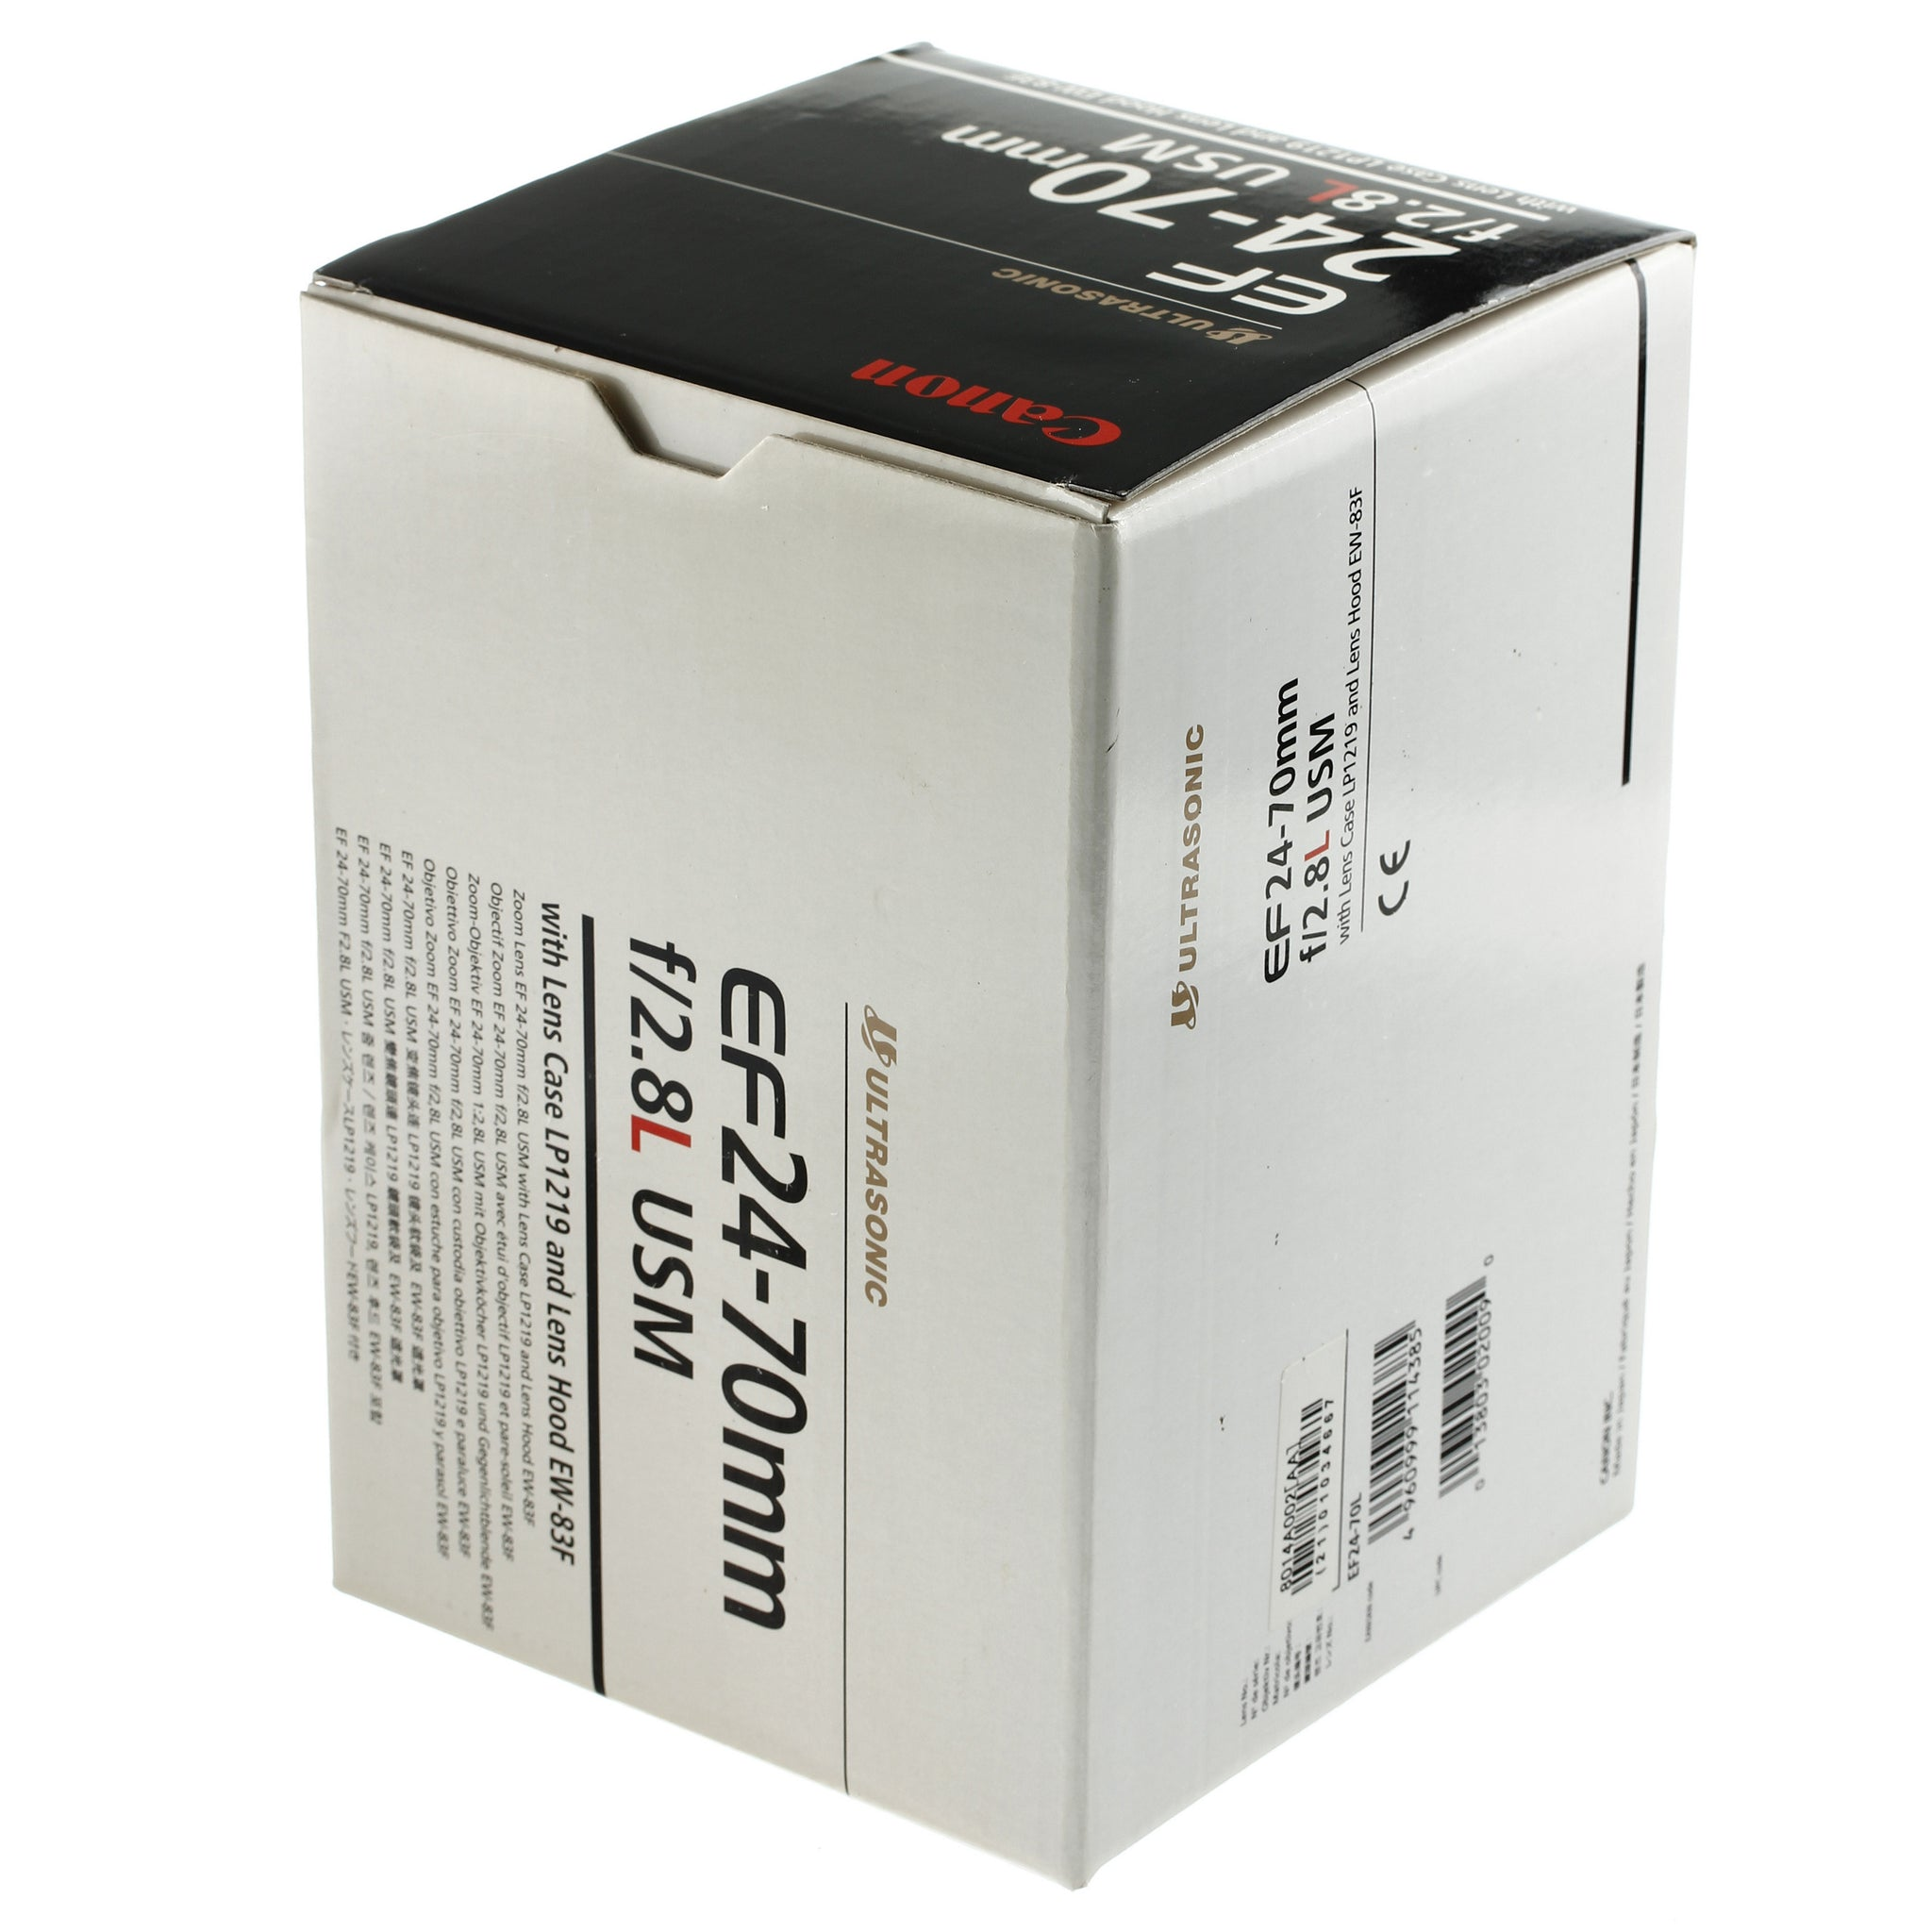 Canon EF 24-70mm 2.8 L Lens Boxed